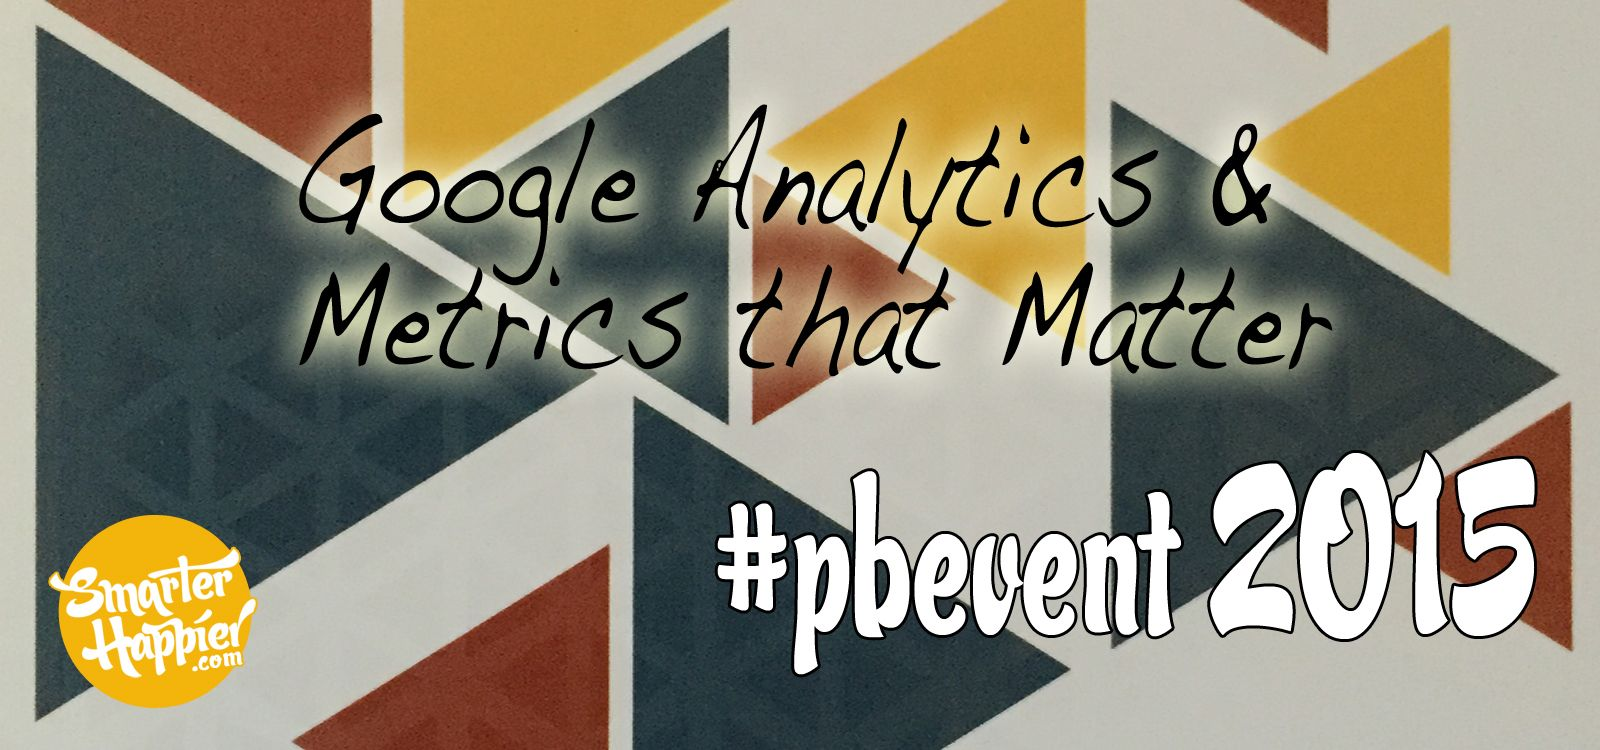 Google Analytics & Metrics that Matter #pbevent 2015 www.smarterhappier.com Our third post from #pbevent covers the Metrics that Matter session (all about Google Analytics) presented by Benjamin Mangold from Loves Data​. A session full of takeaways and practical steps to help improve your blog through analytics.